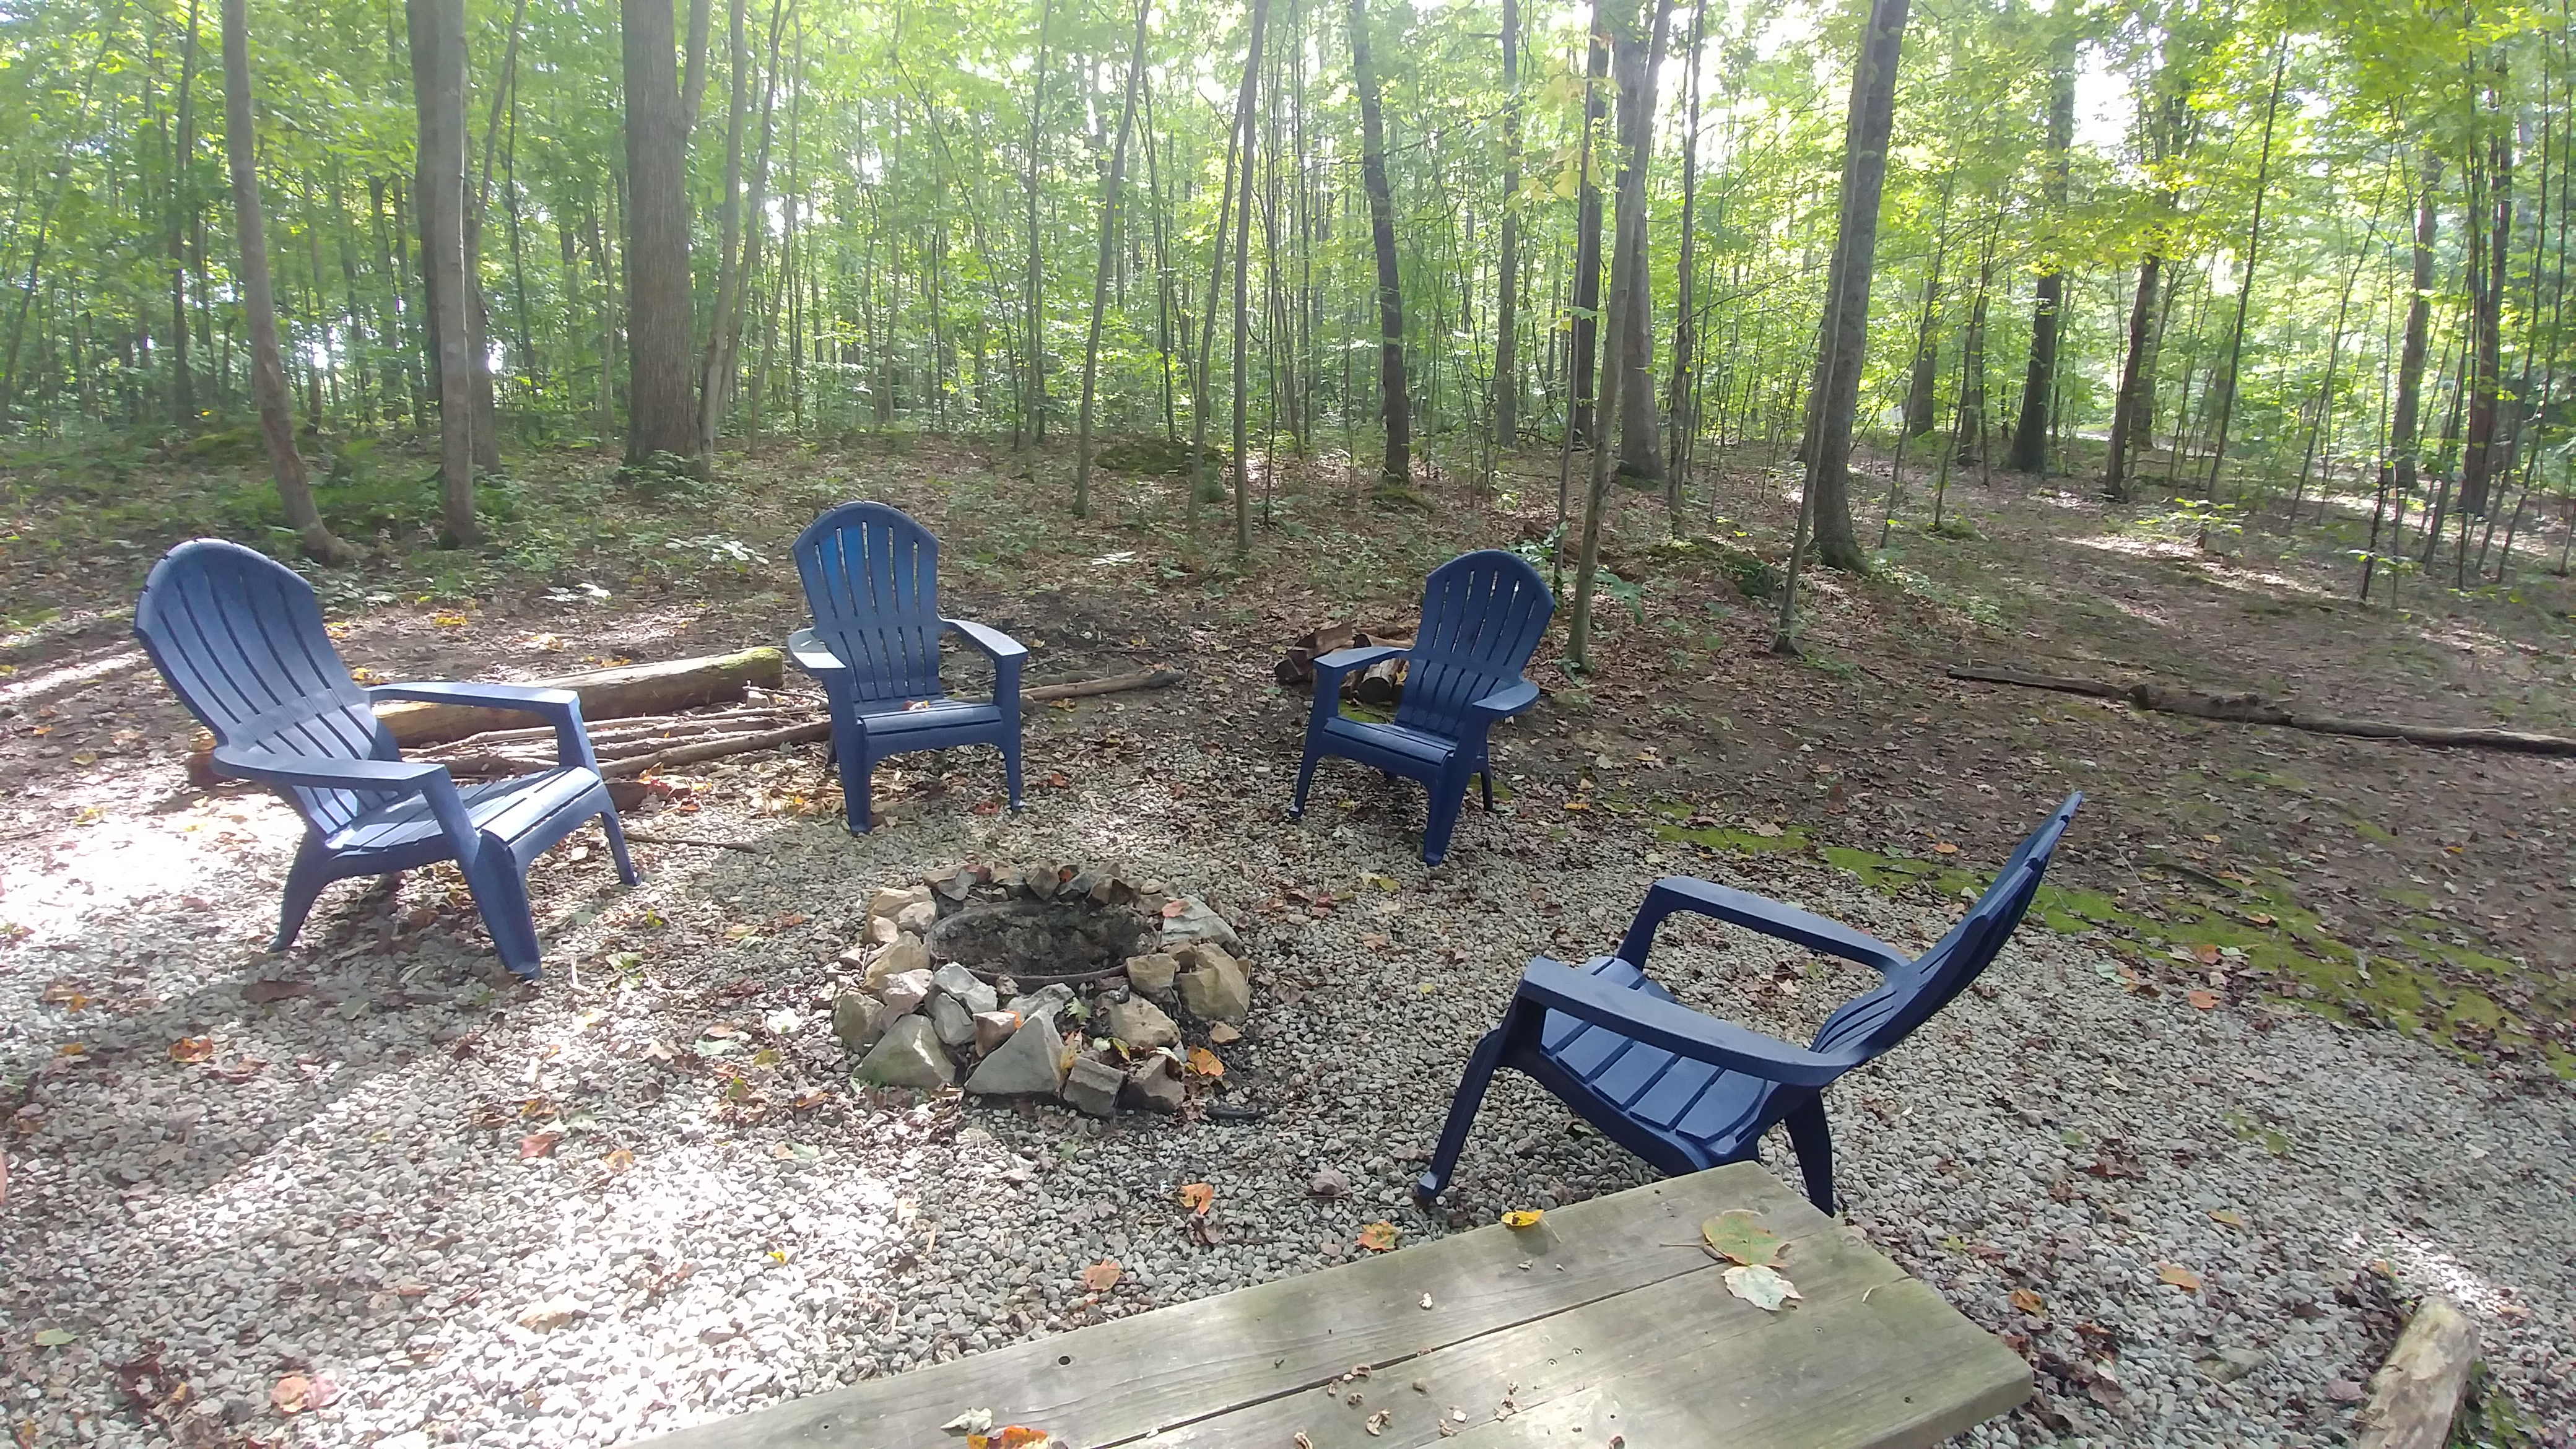 Fire Pit - The fire pit is located in our wooded surrounding, such a peaceful setting!